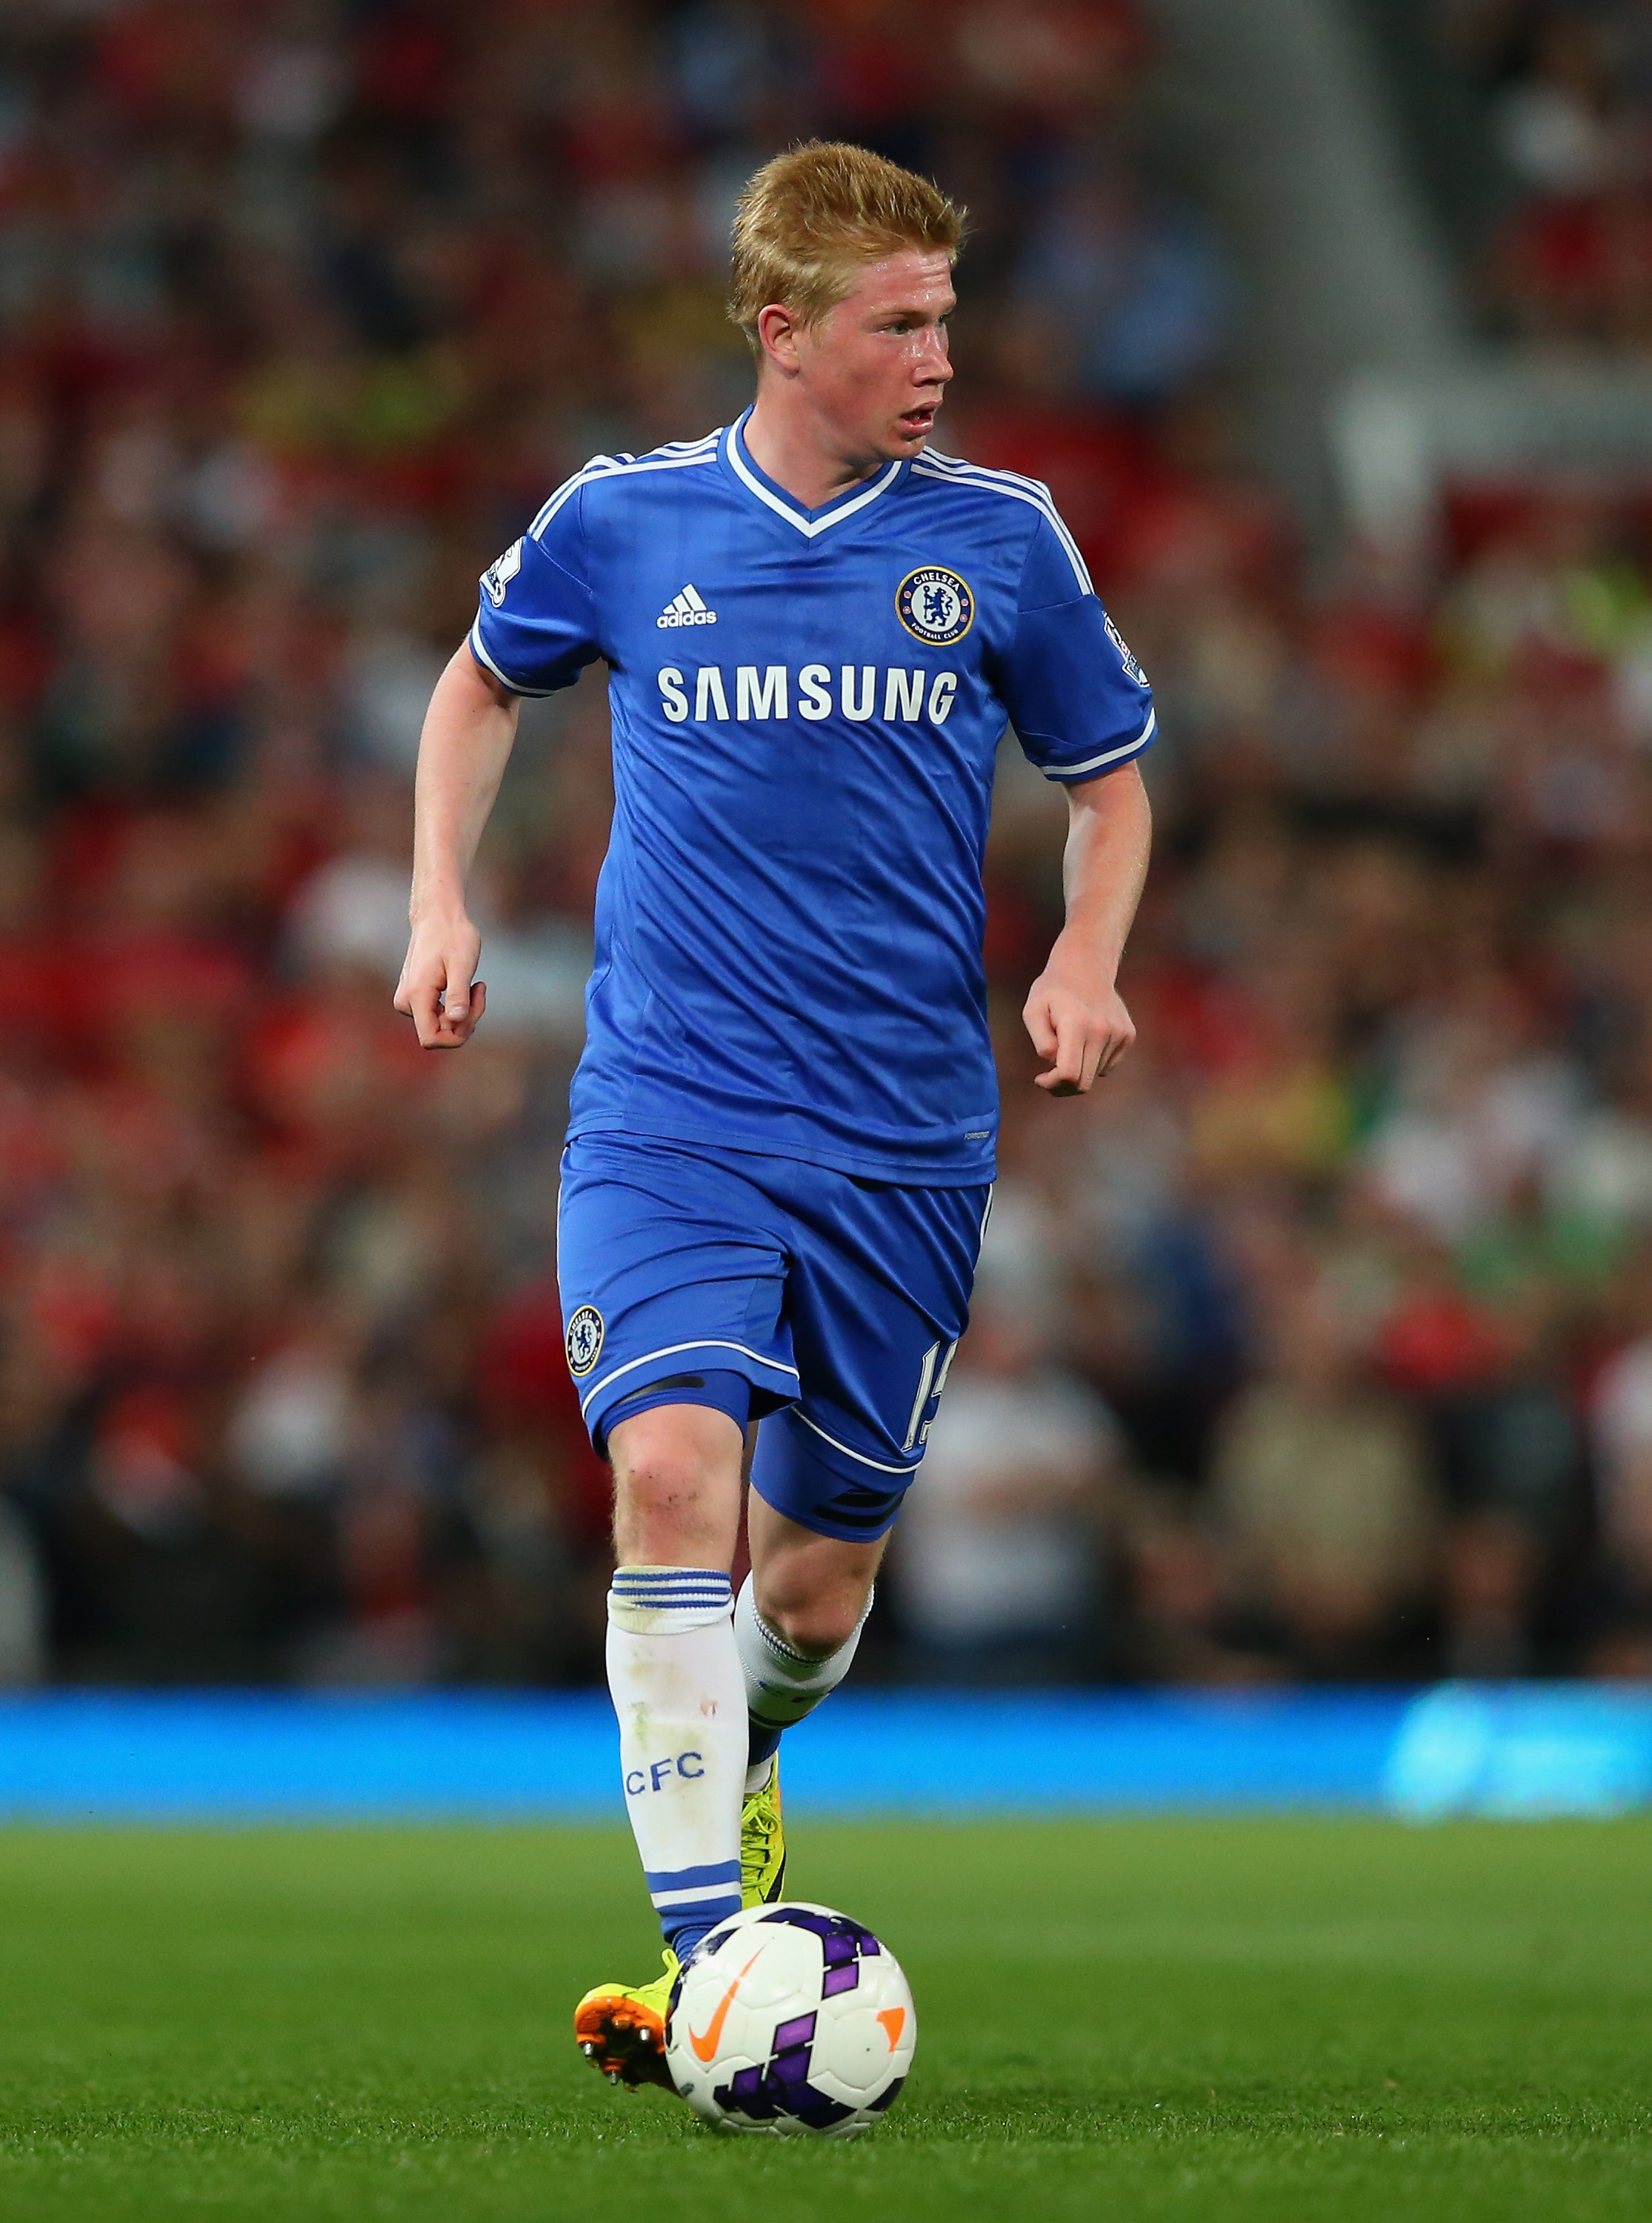 Wolfsburg confirm interest in signing Kevin De Bruyne from Chelsea